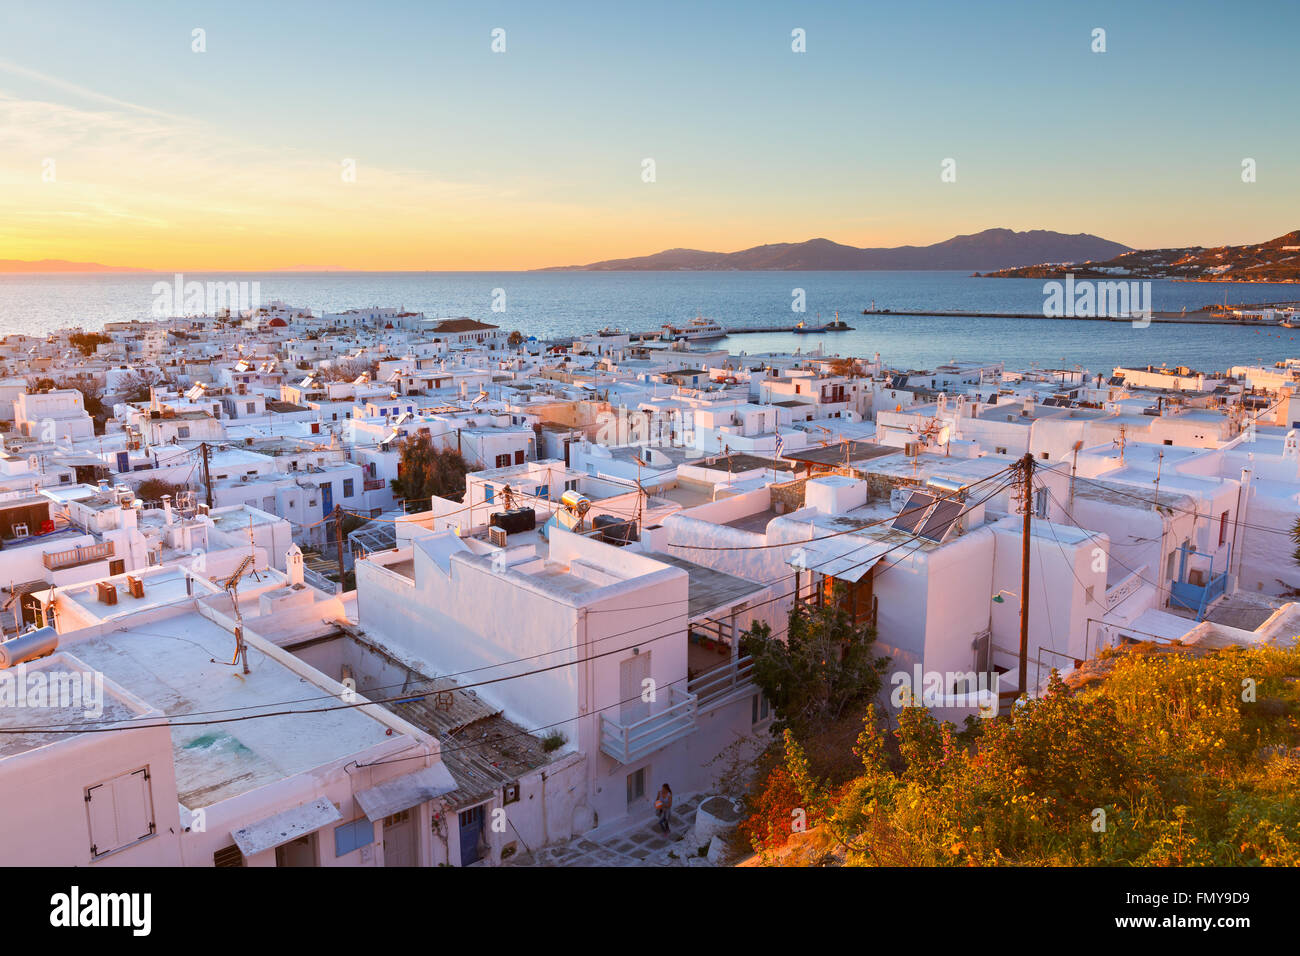 View of Mykonos town and Tinos island in the distance, Greece. - Stock Image